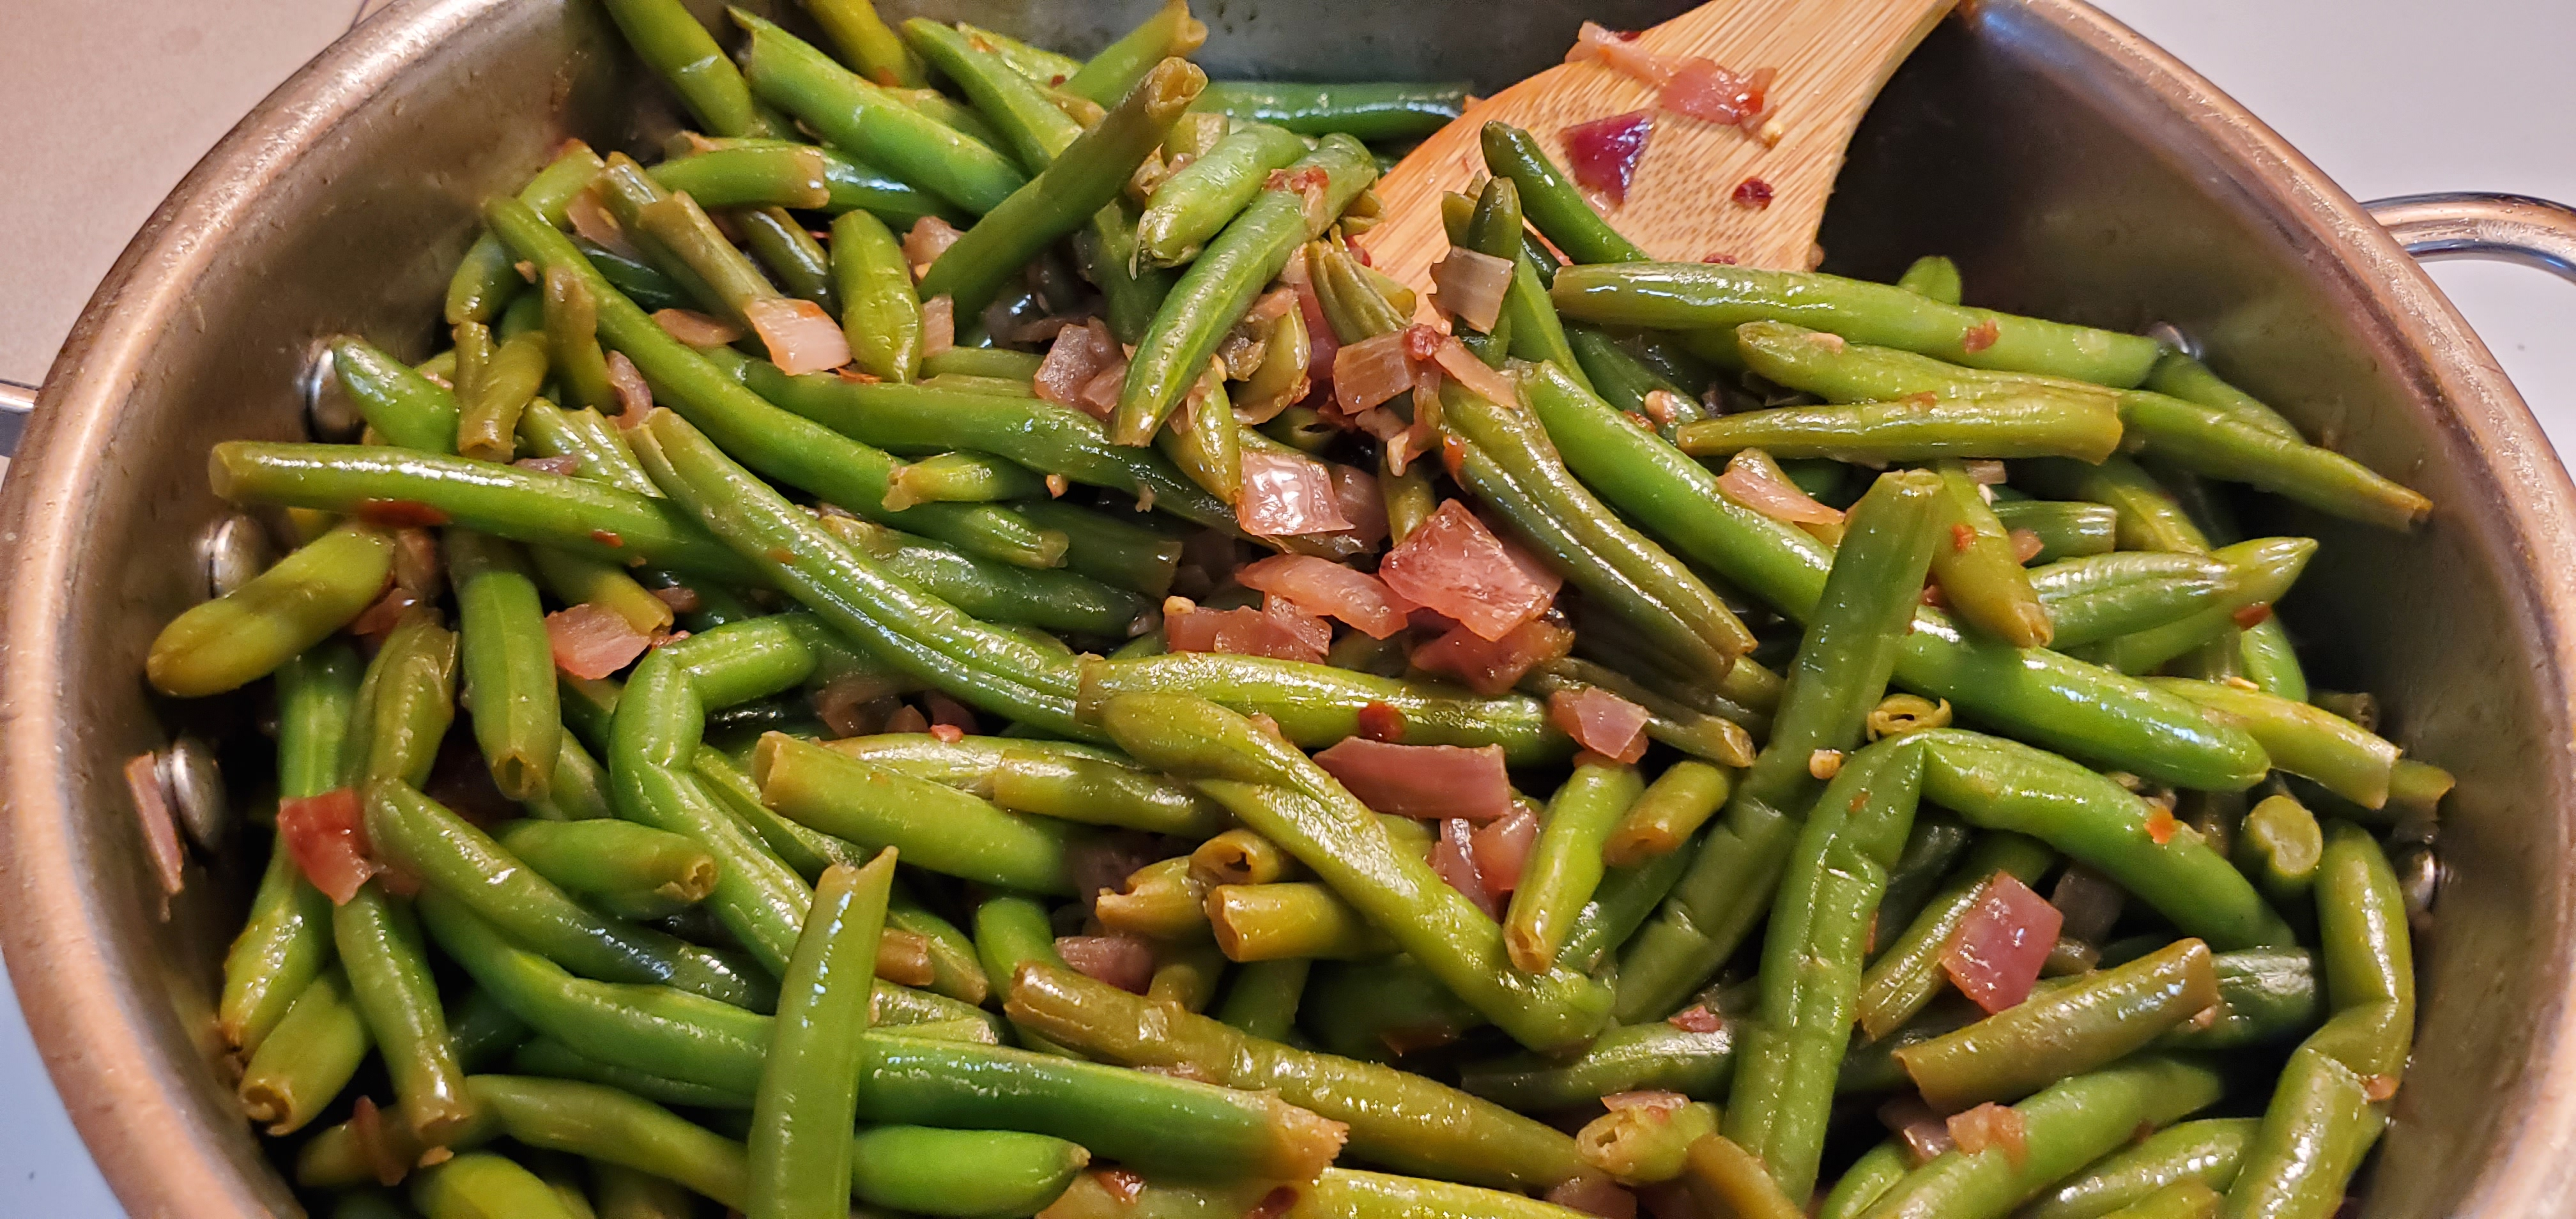 Sauteed Green Beans with Garlic_image